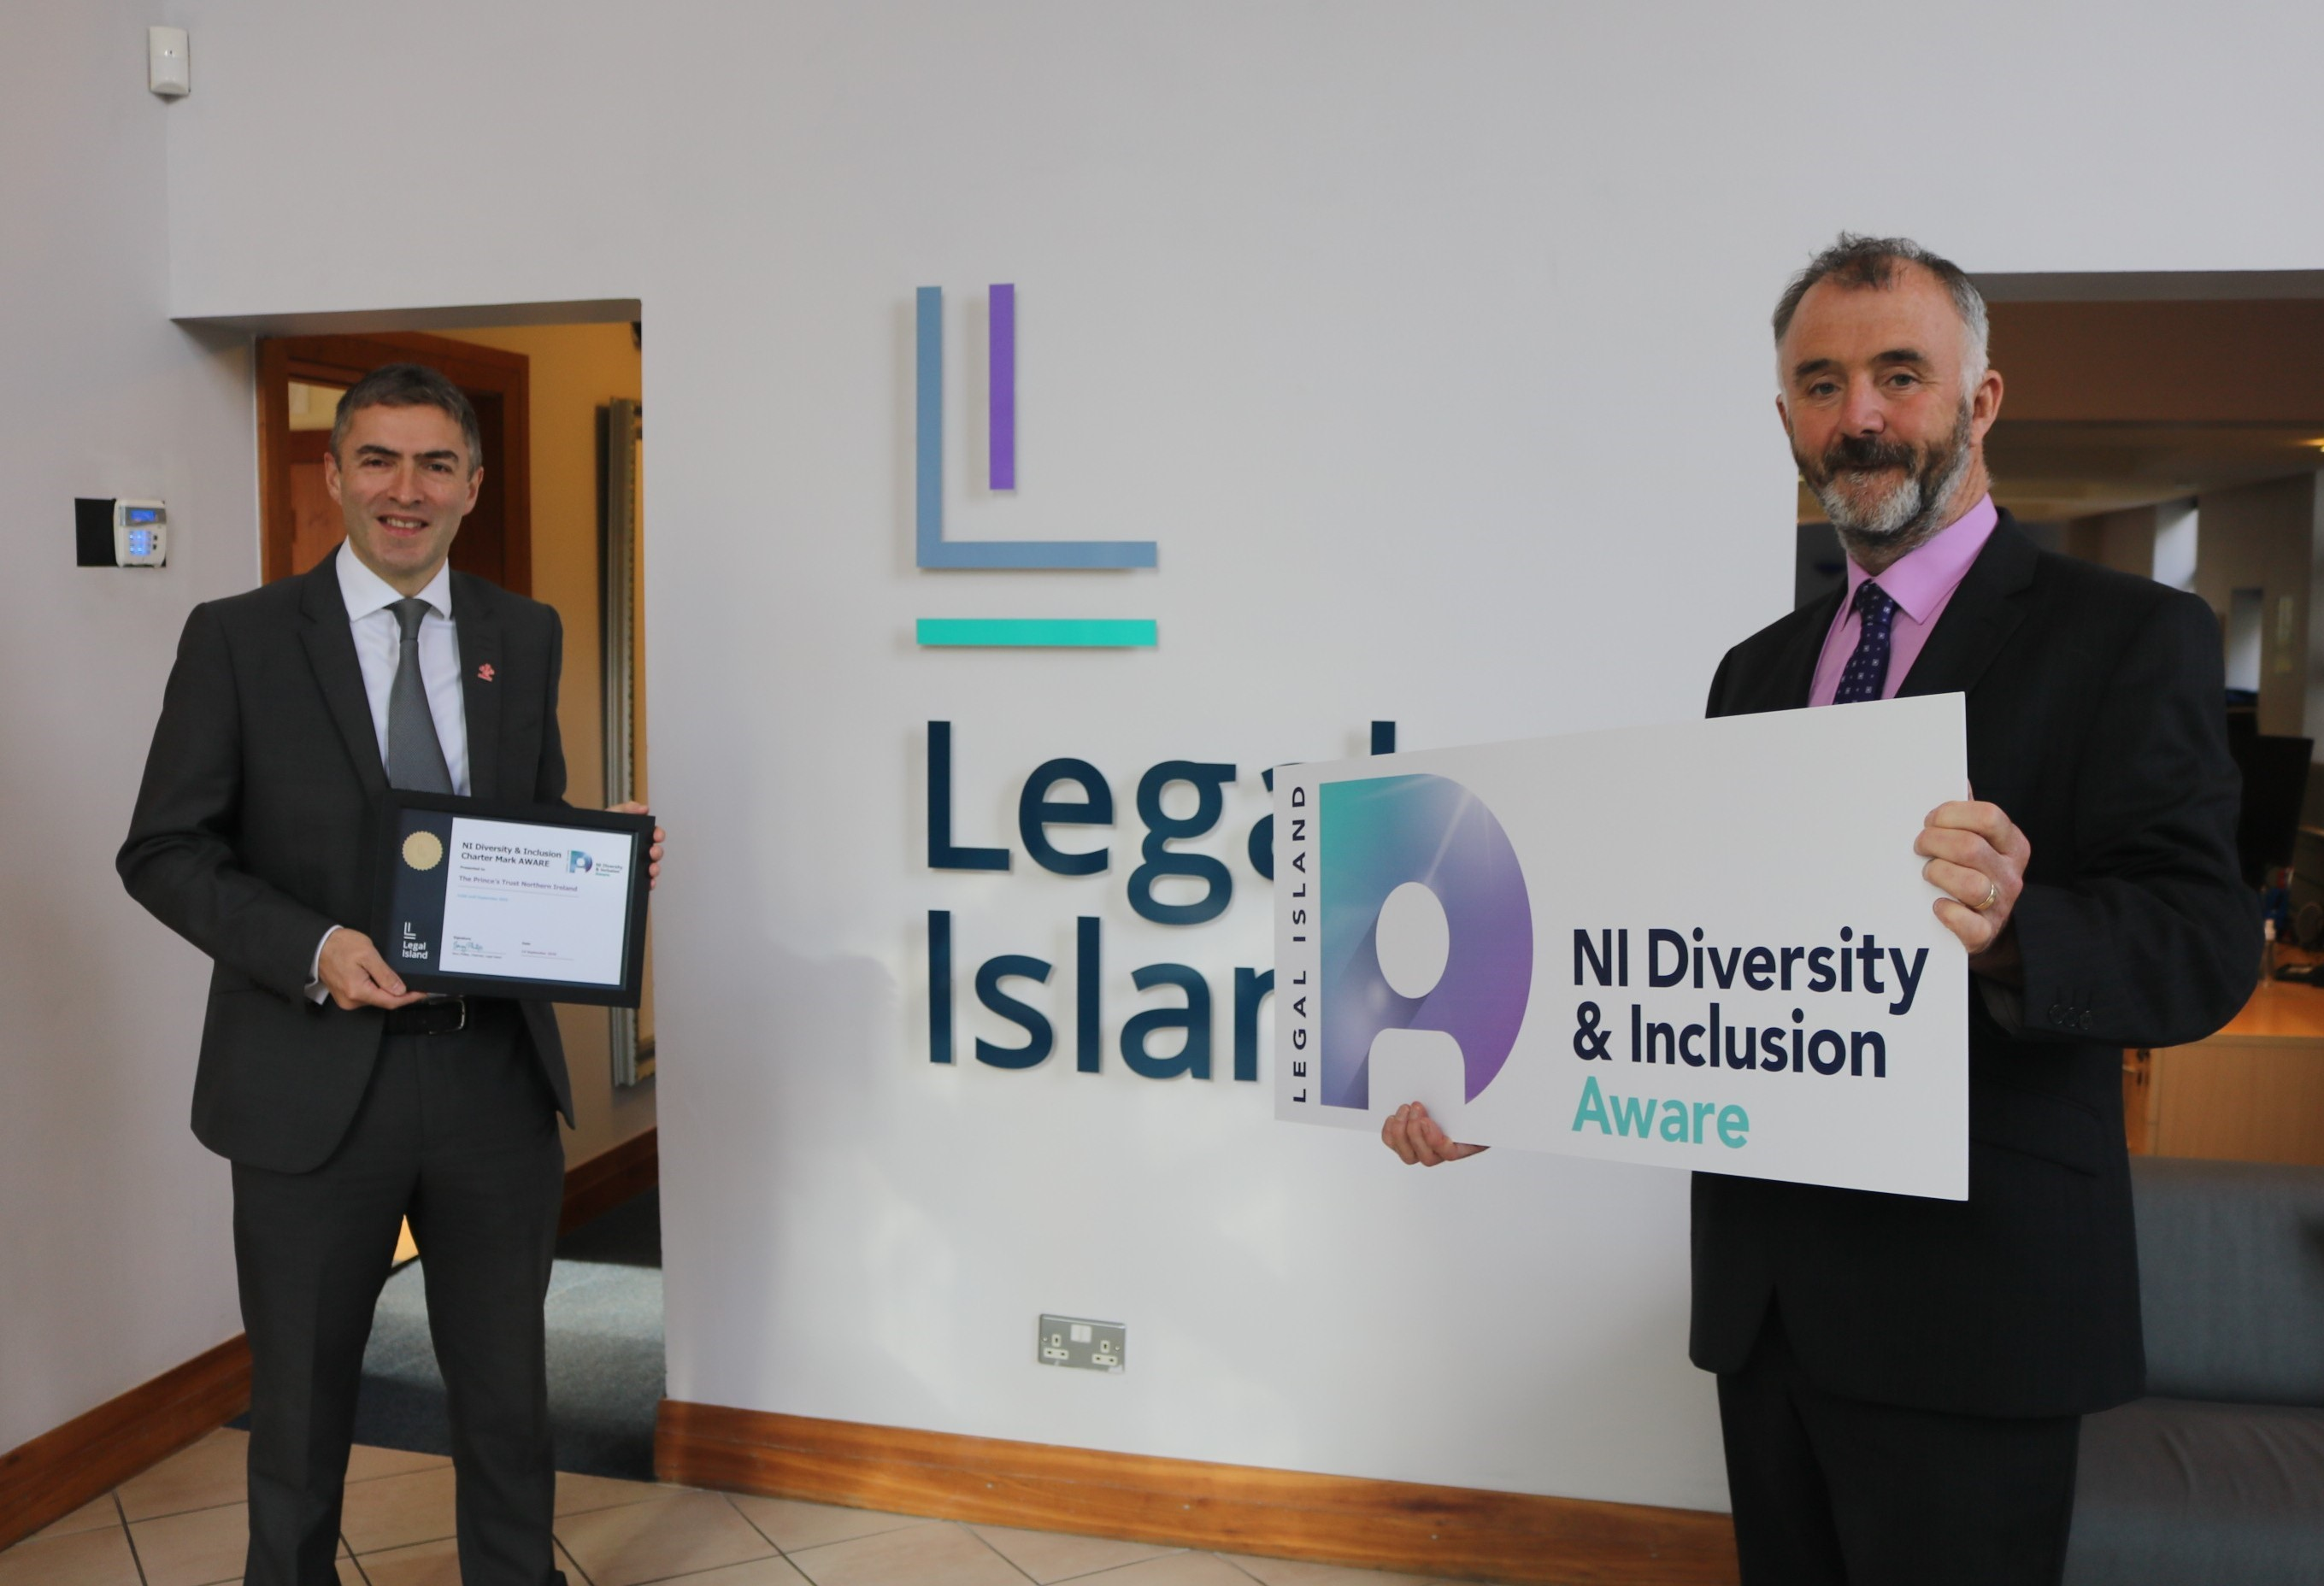 The Prince's Trust NI receive Legal Island's Chartermark